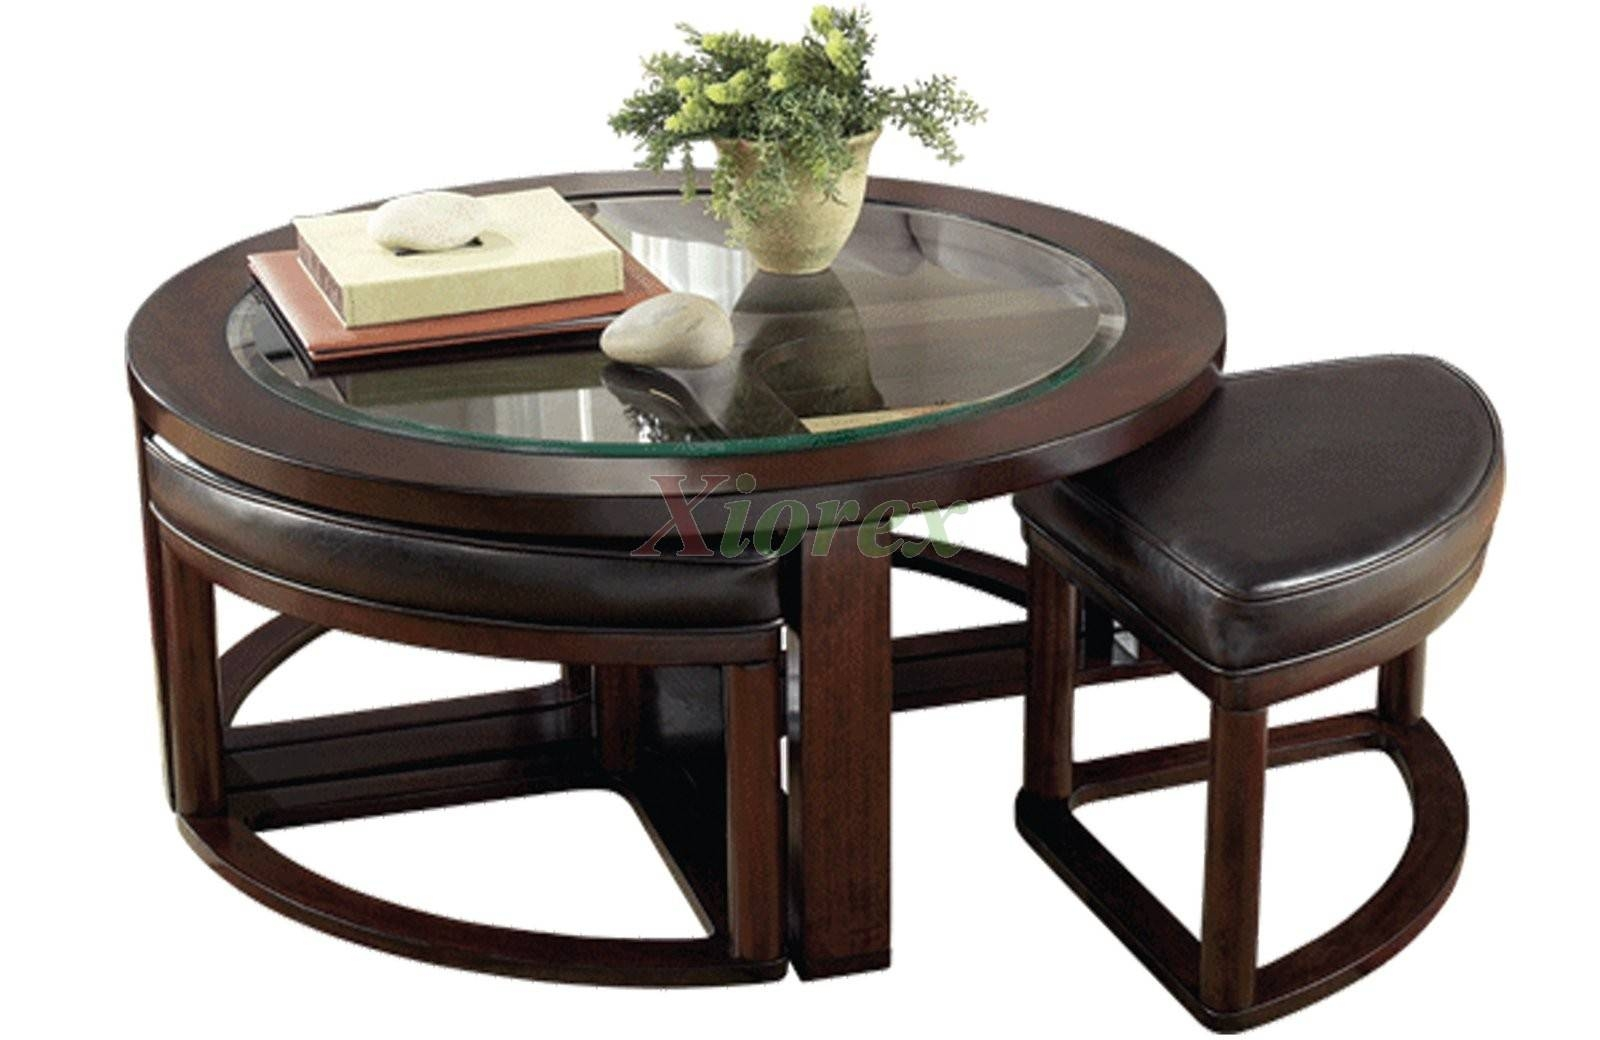 Coffee Tables | Xiorex Pertaining To Coffee Table With Stools (View 9 of 30)